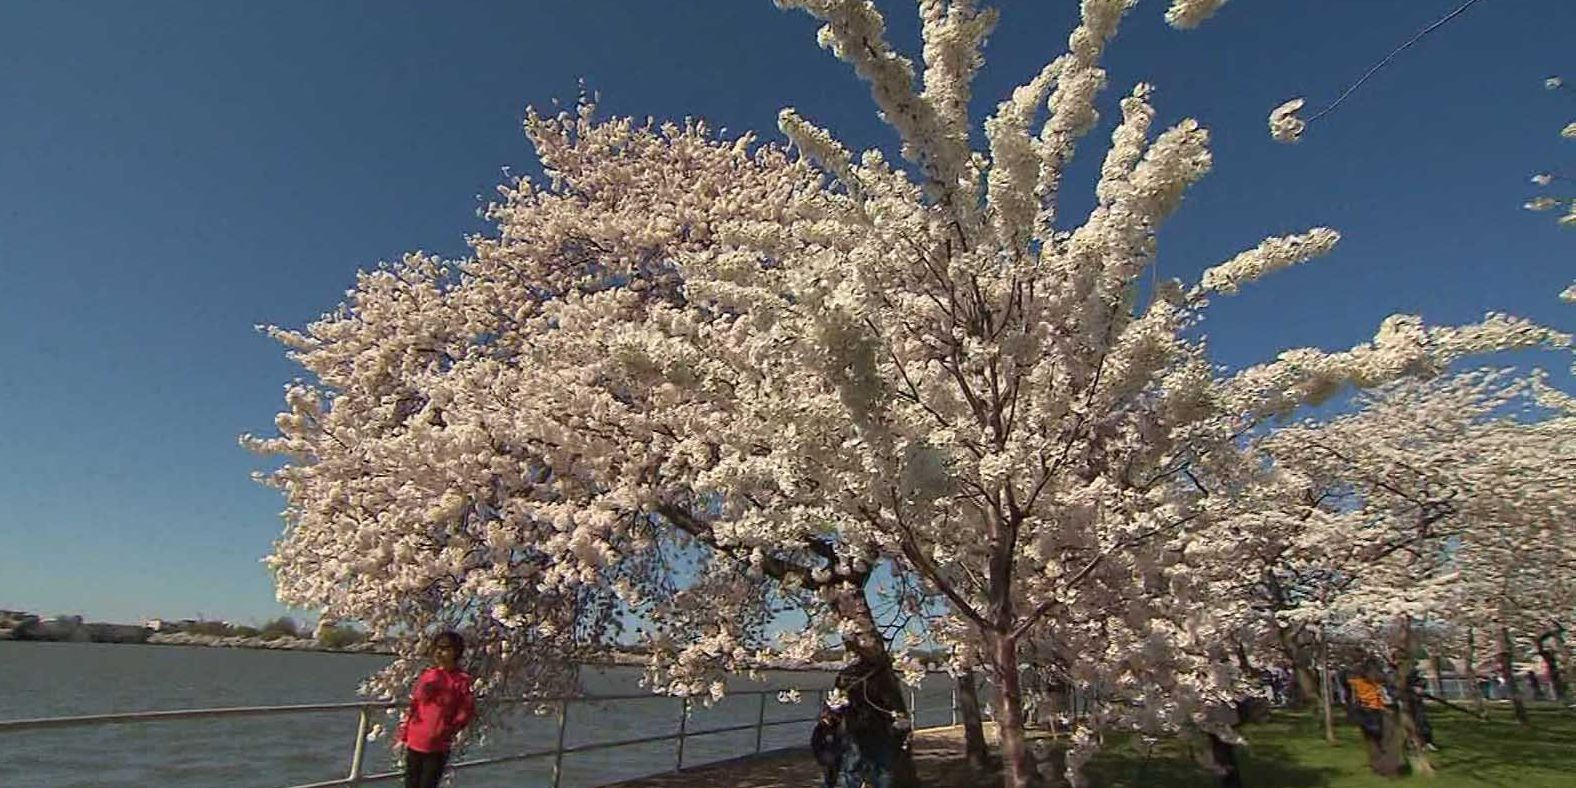 Spring into allergy season with these tips to feel better